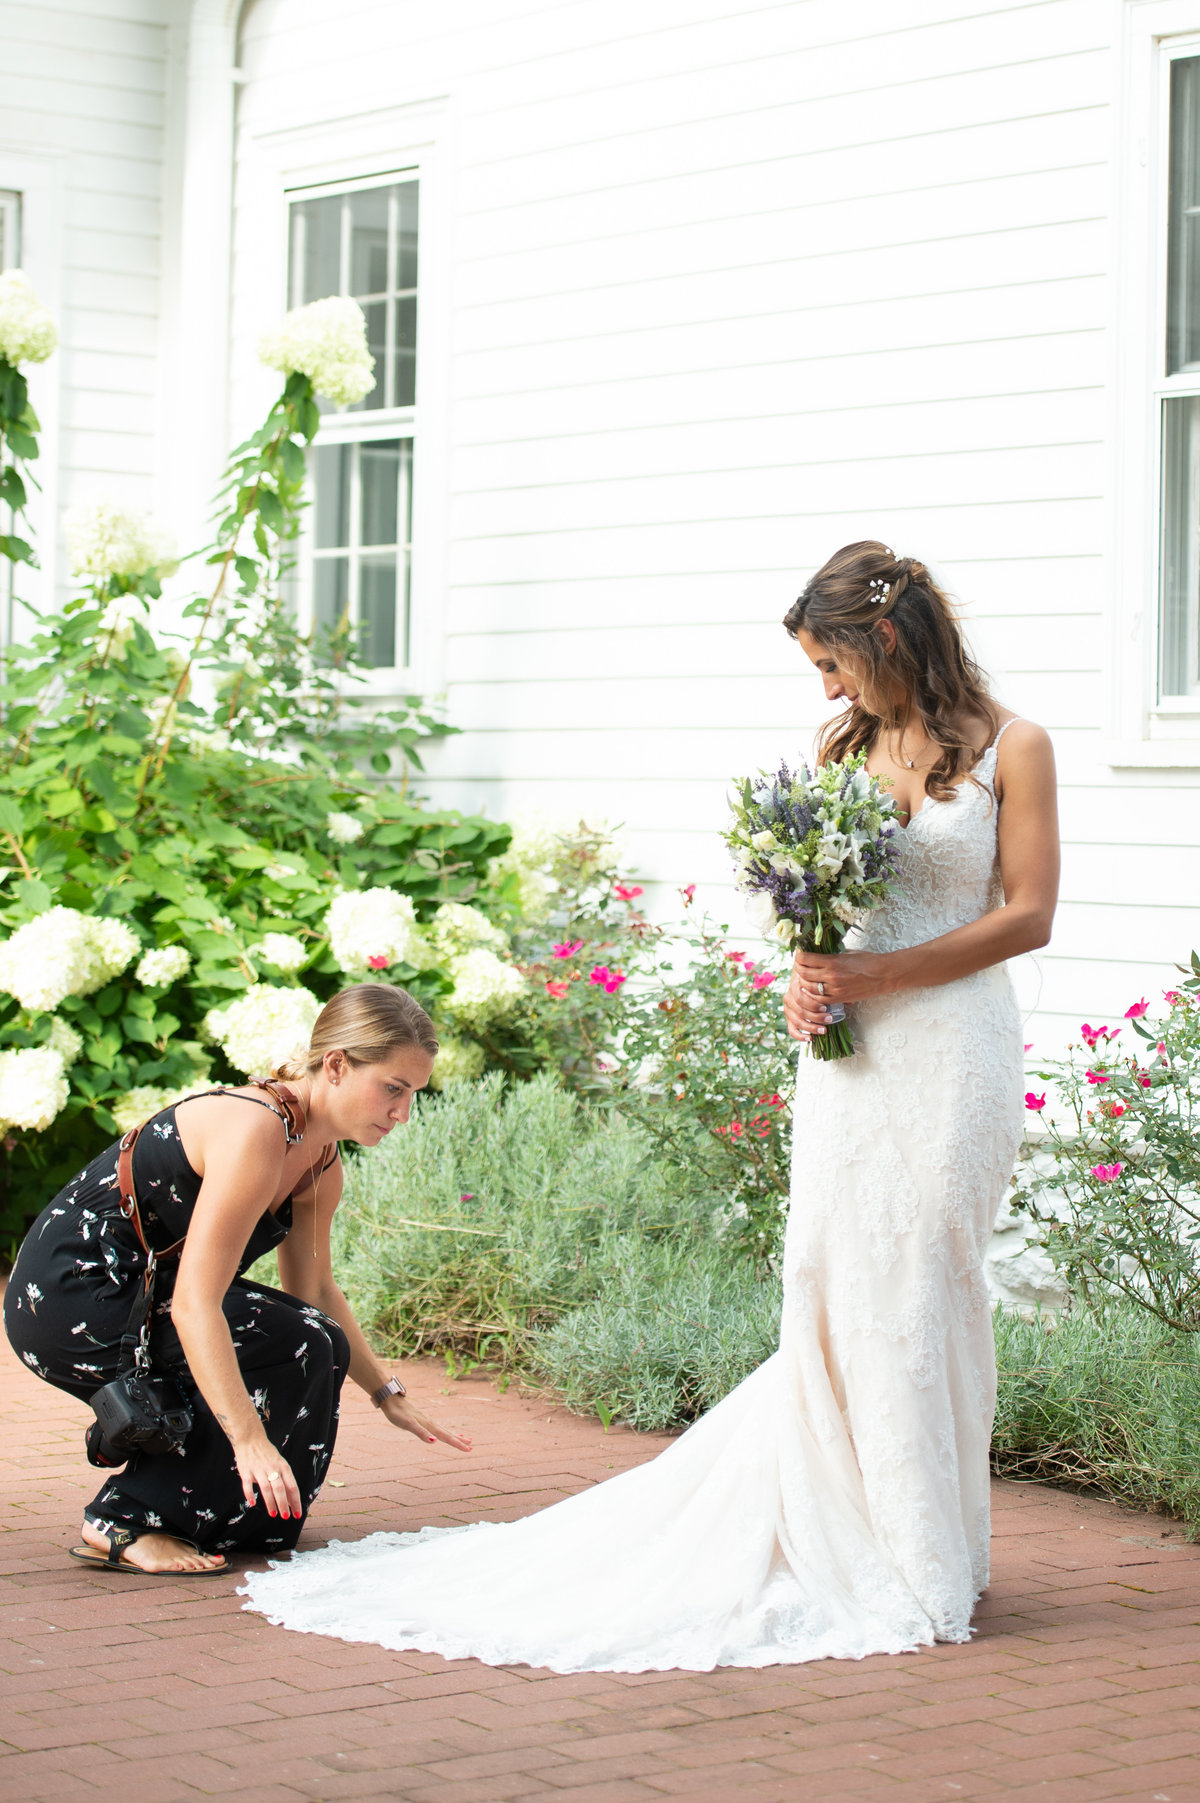 Ashley Mac Photographs - New Jersey Weddings - Behind the Scenes of a Wedding - BTS-40